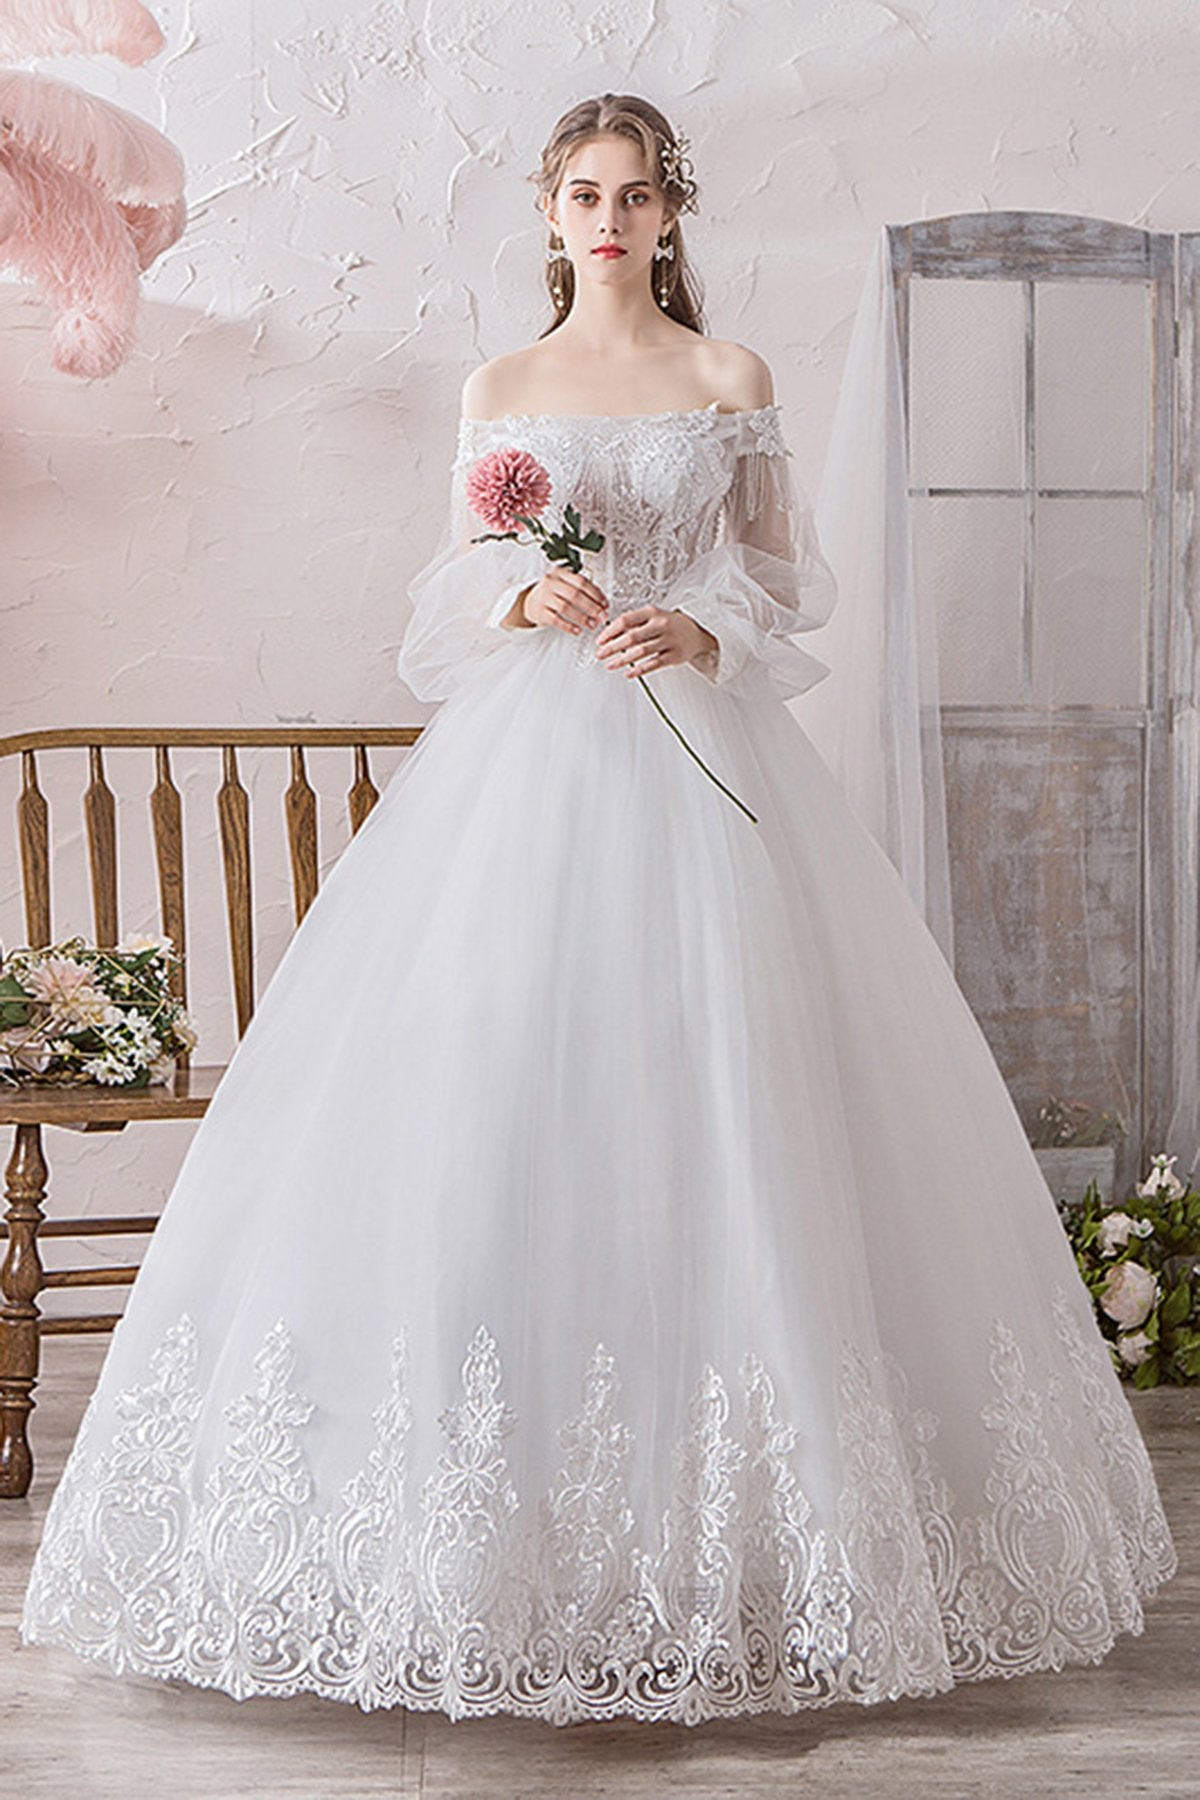 French Style Off Shoulder Tulle Wedding Dress For Wedding Trip Shot Wedding Dress S White